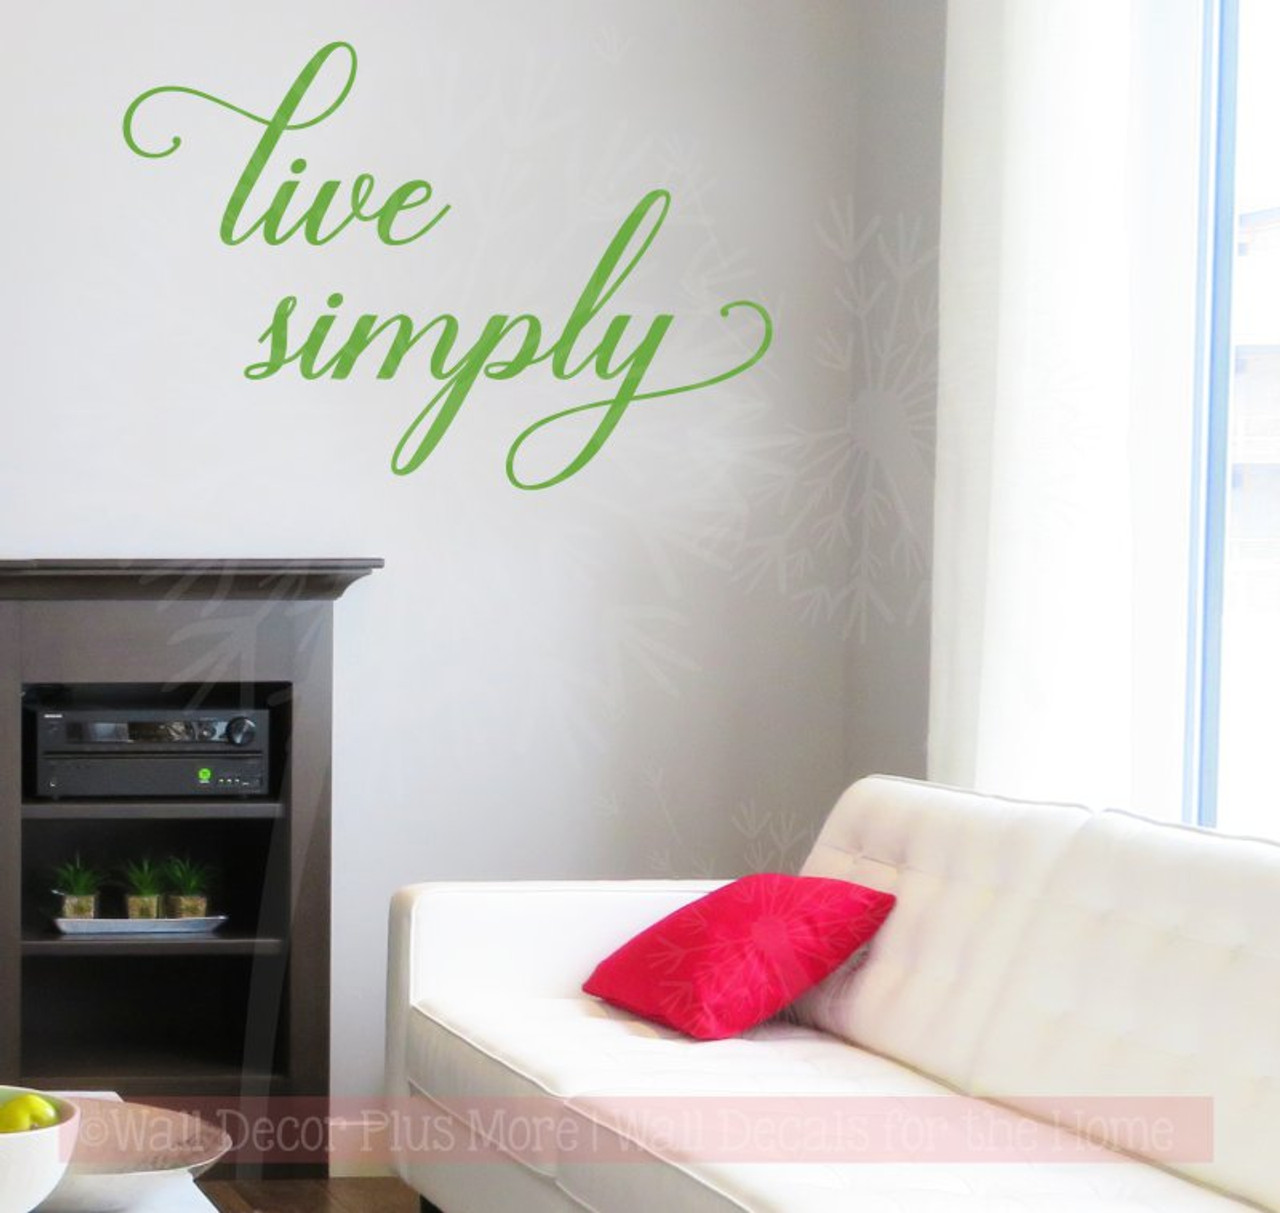 Live Simply Inspirational Vinyl Letters Wall Sticker Decal Home Decor